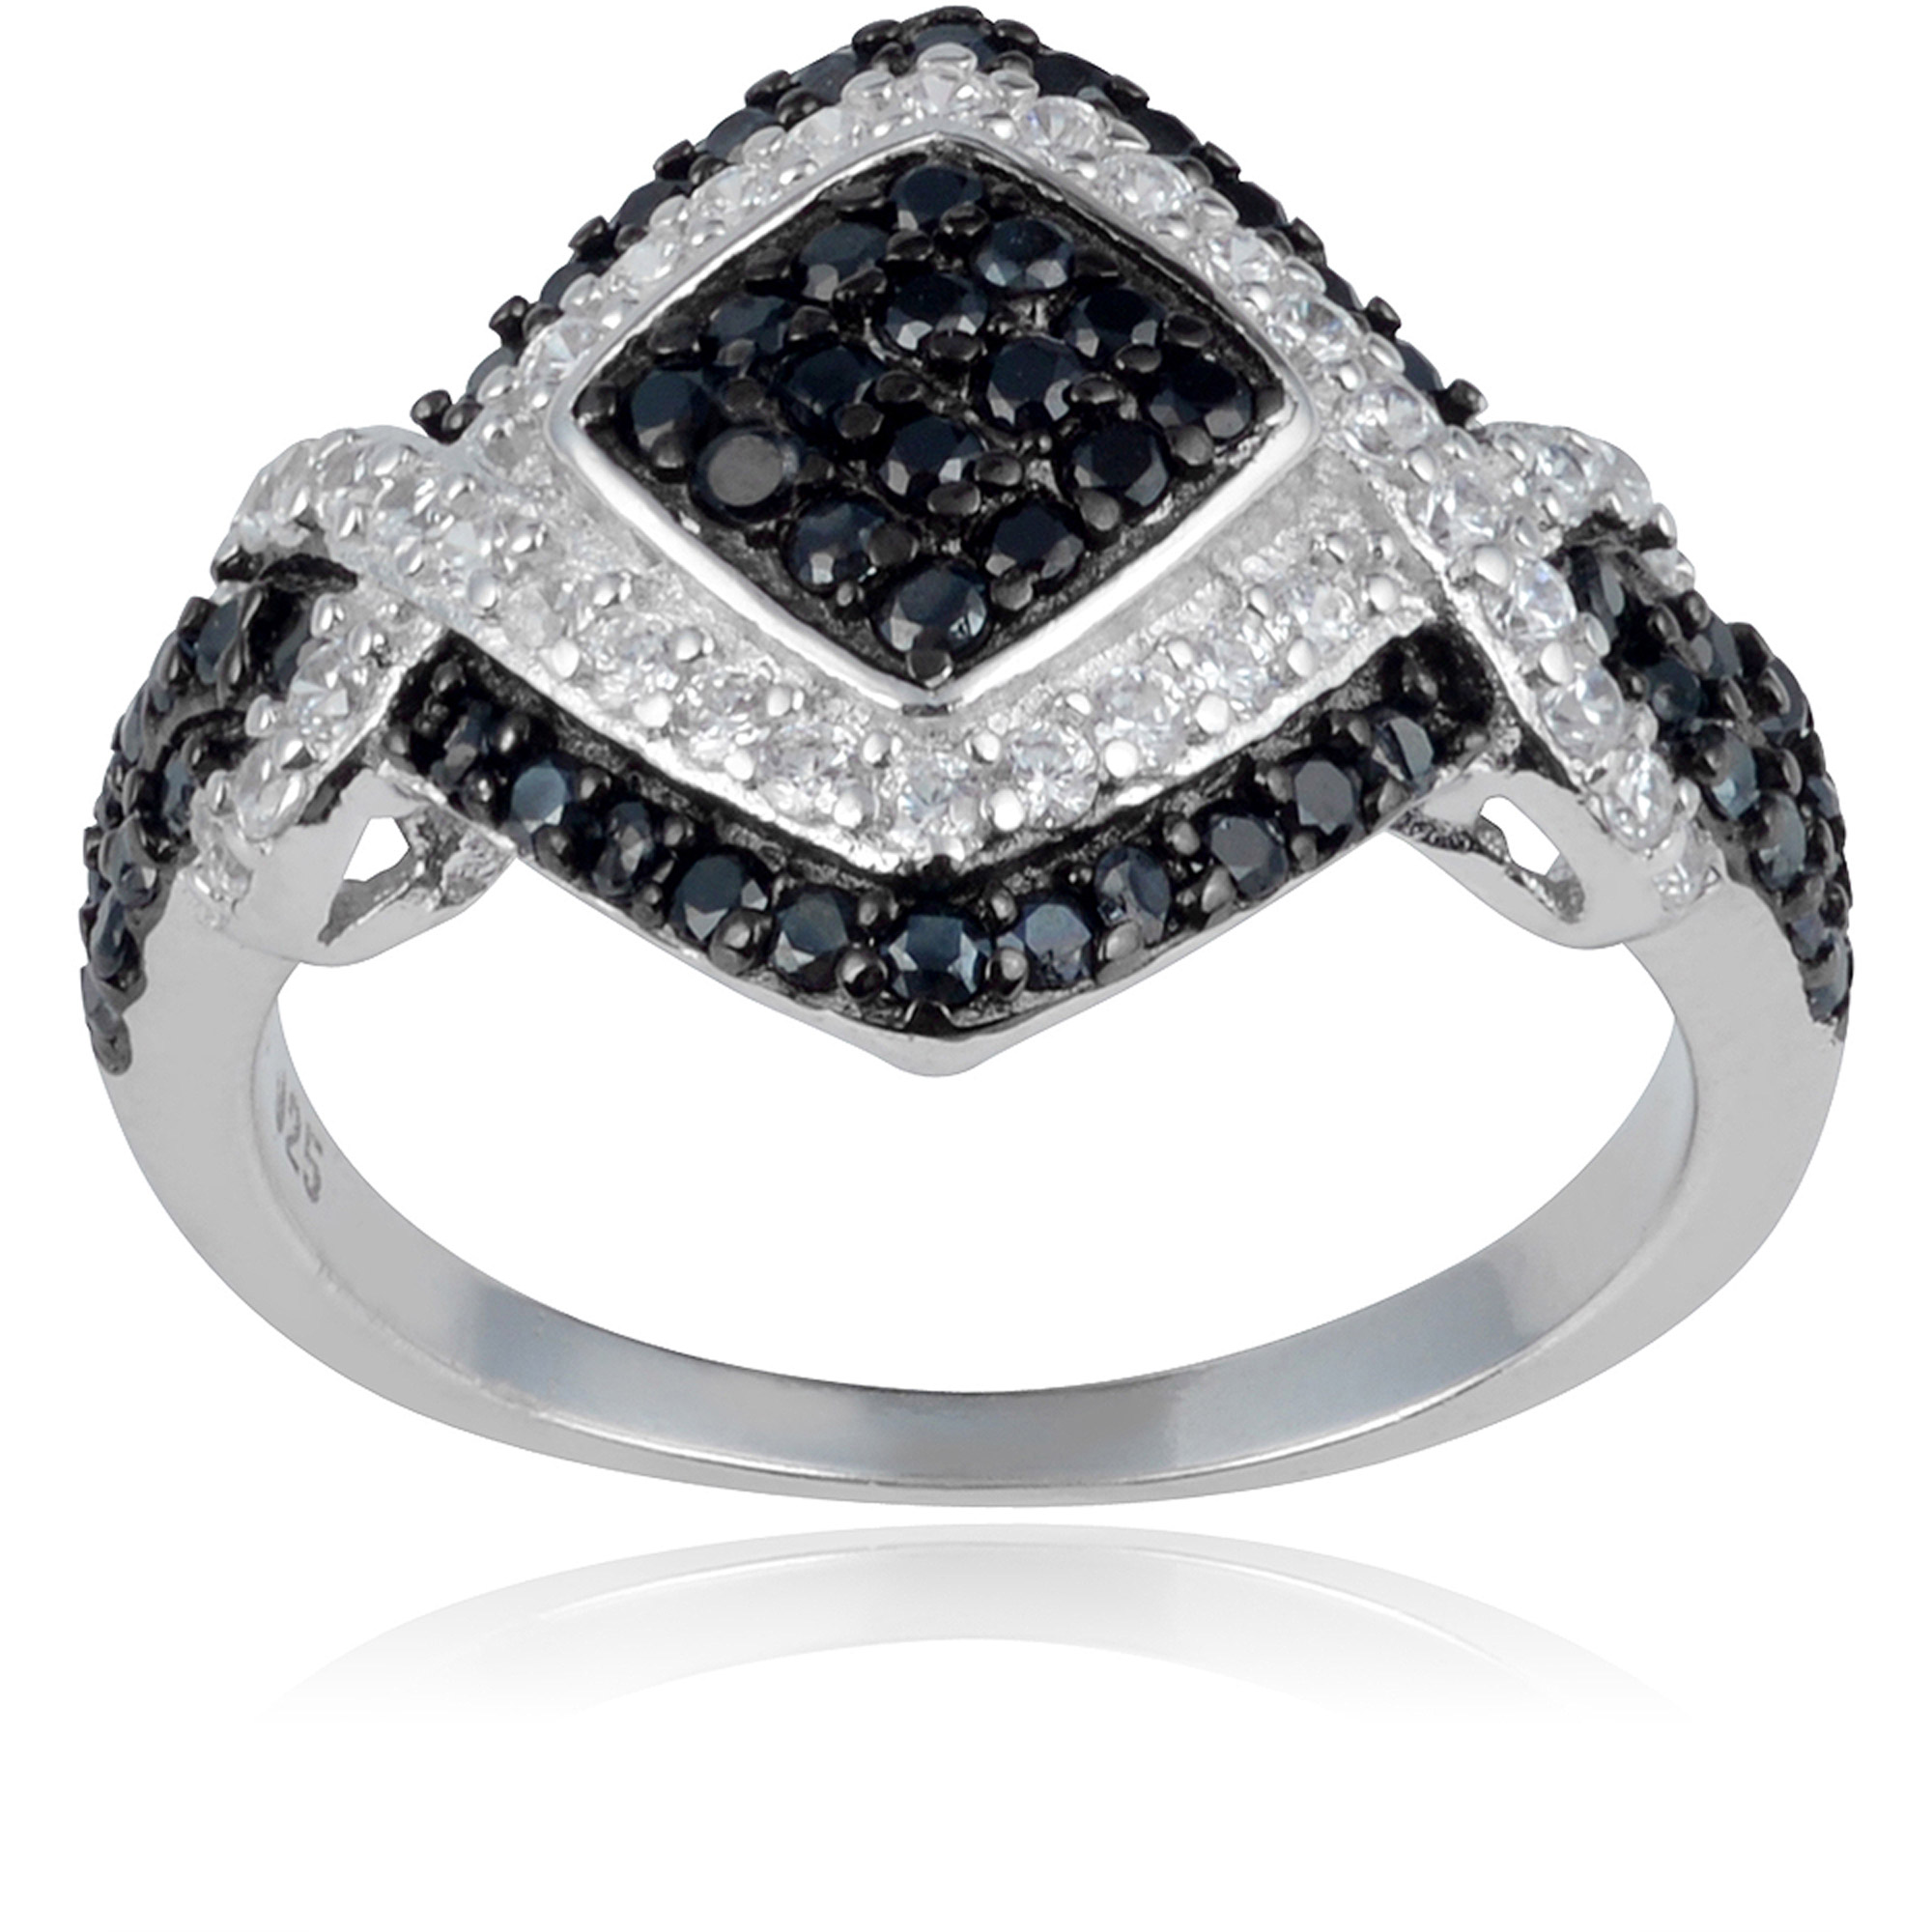 Alexandria Collection Women's Round-Cut CZ Sterling Silver Engagement Ring